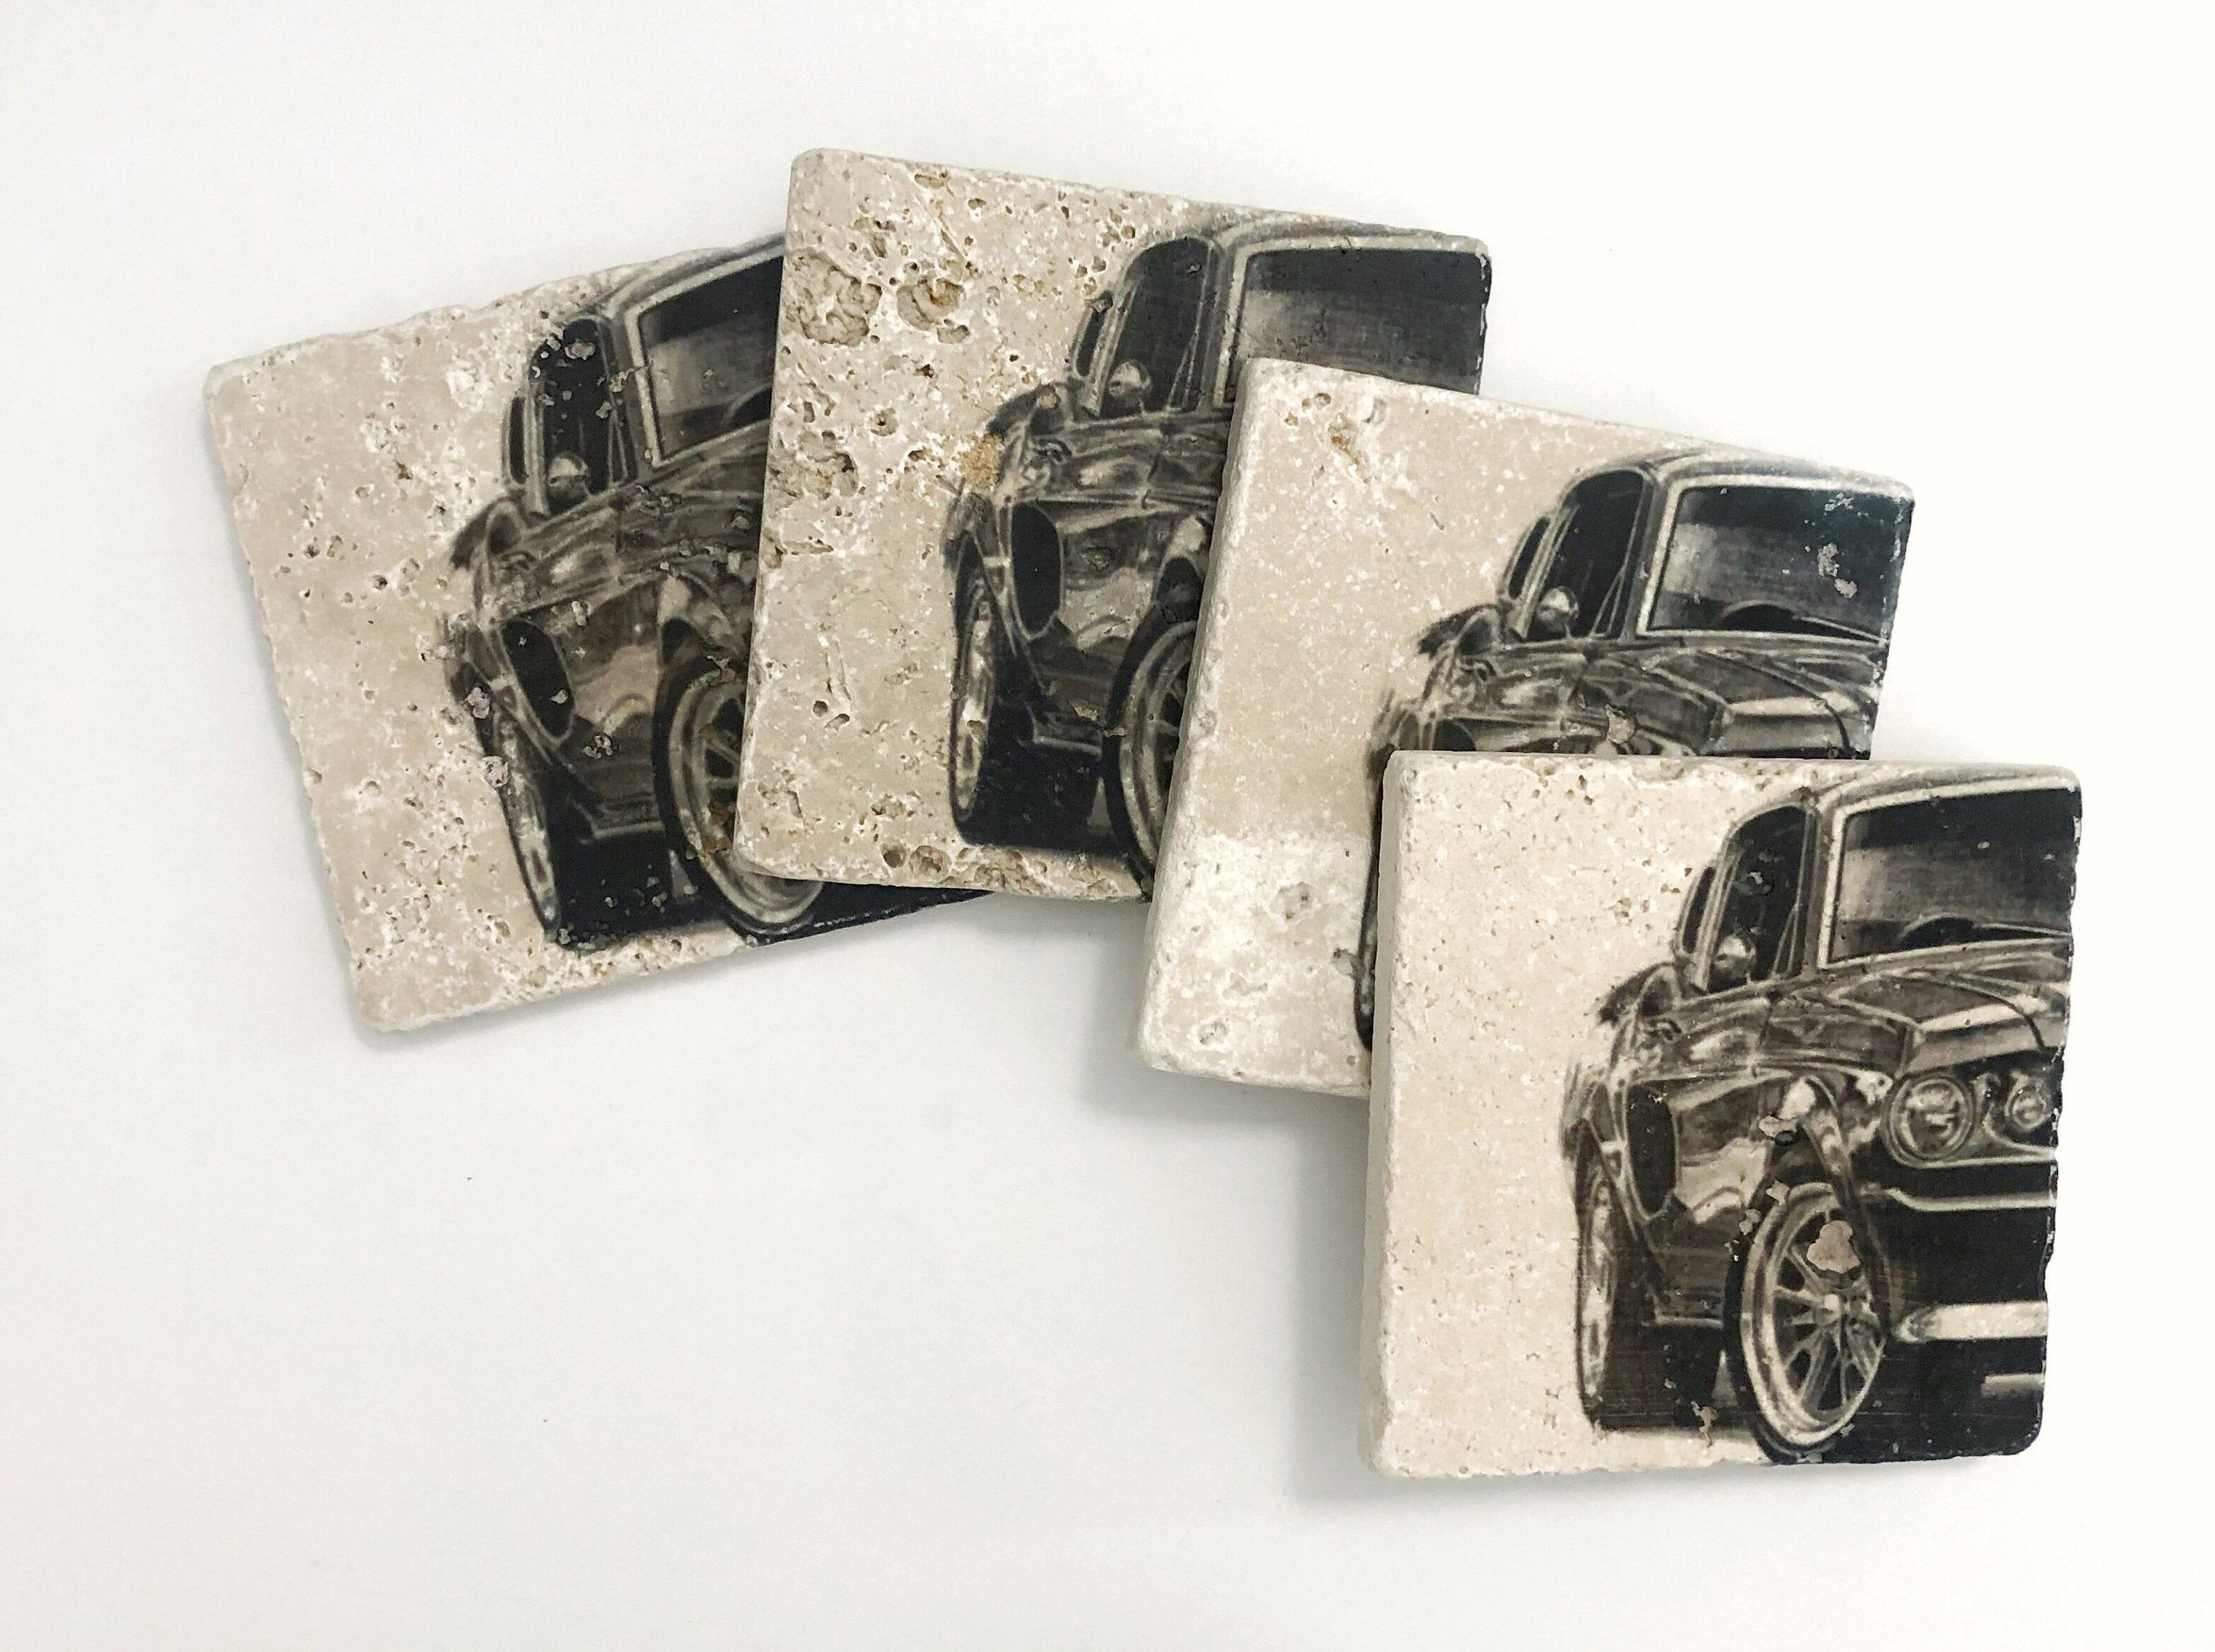 Classic Car Natural Stone Coasters Set of 4 with Full Cork